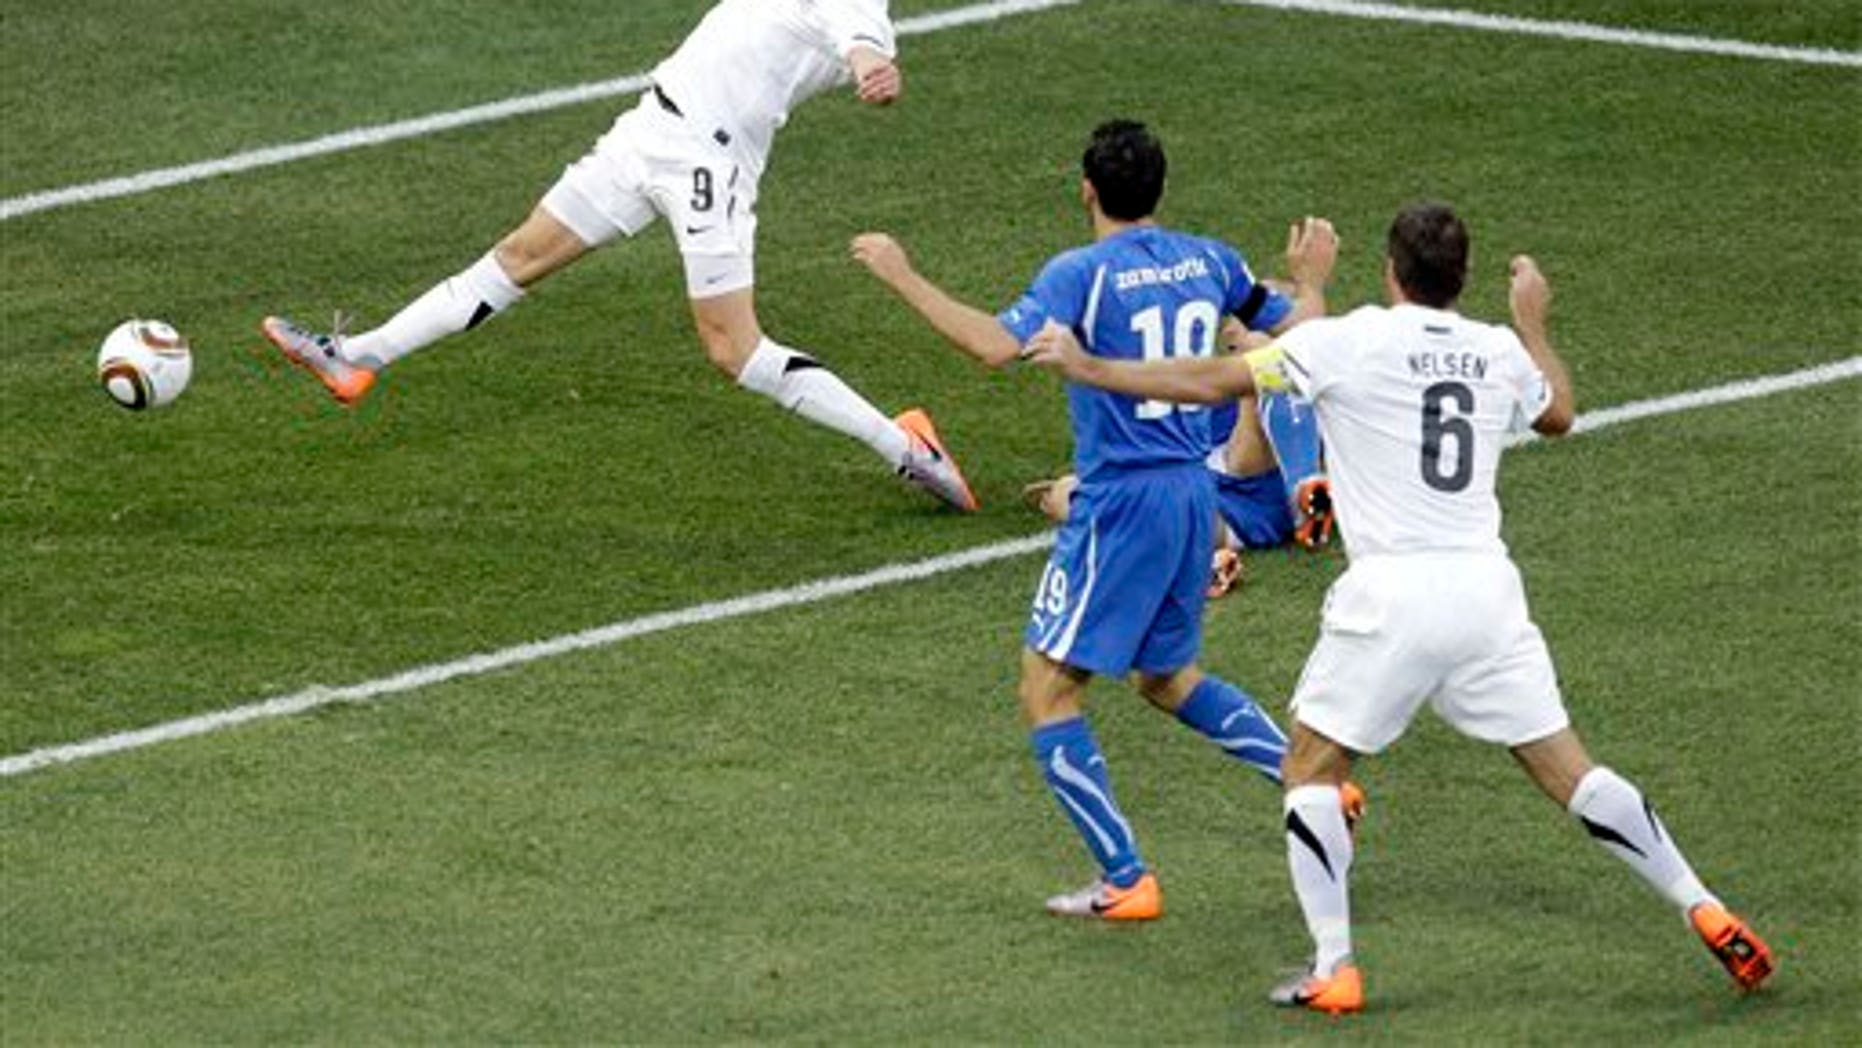 June 20: New Zealand's Shane Smeltz, top, scores during the World Cup group F soccer match between Italy and New Zealand at Mbombela Stadium in Nelspruit, South Africa. Security experts are using physics to keep hackers out of sensitive World Cup information.